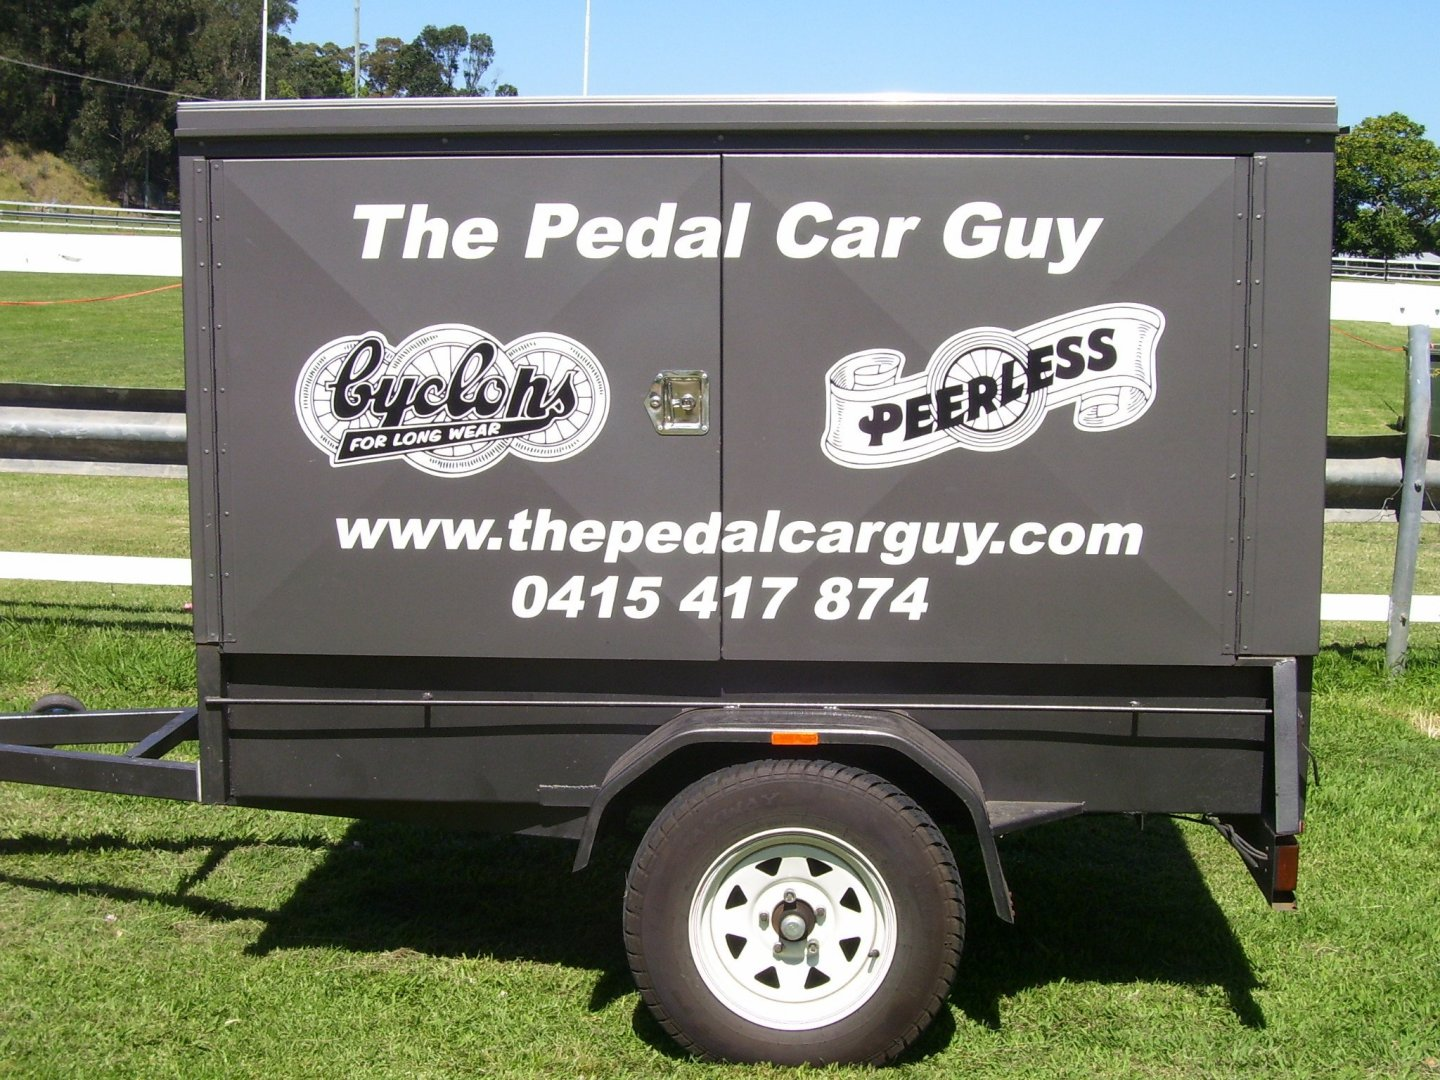 Dave The Pedal Car Guy